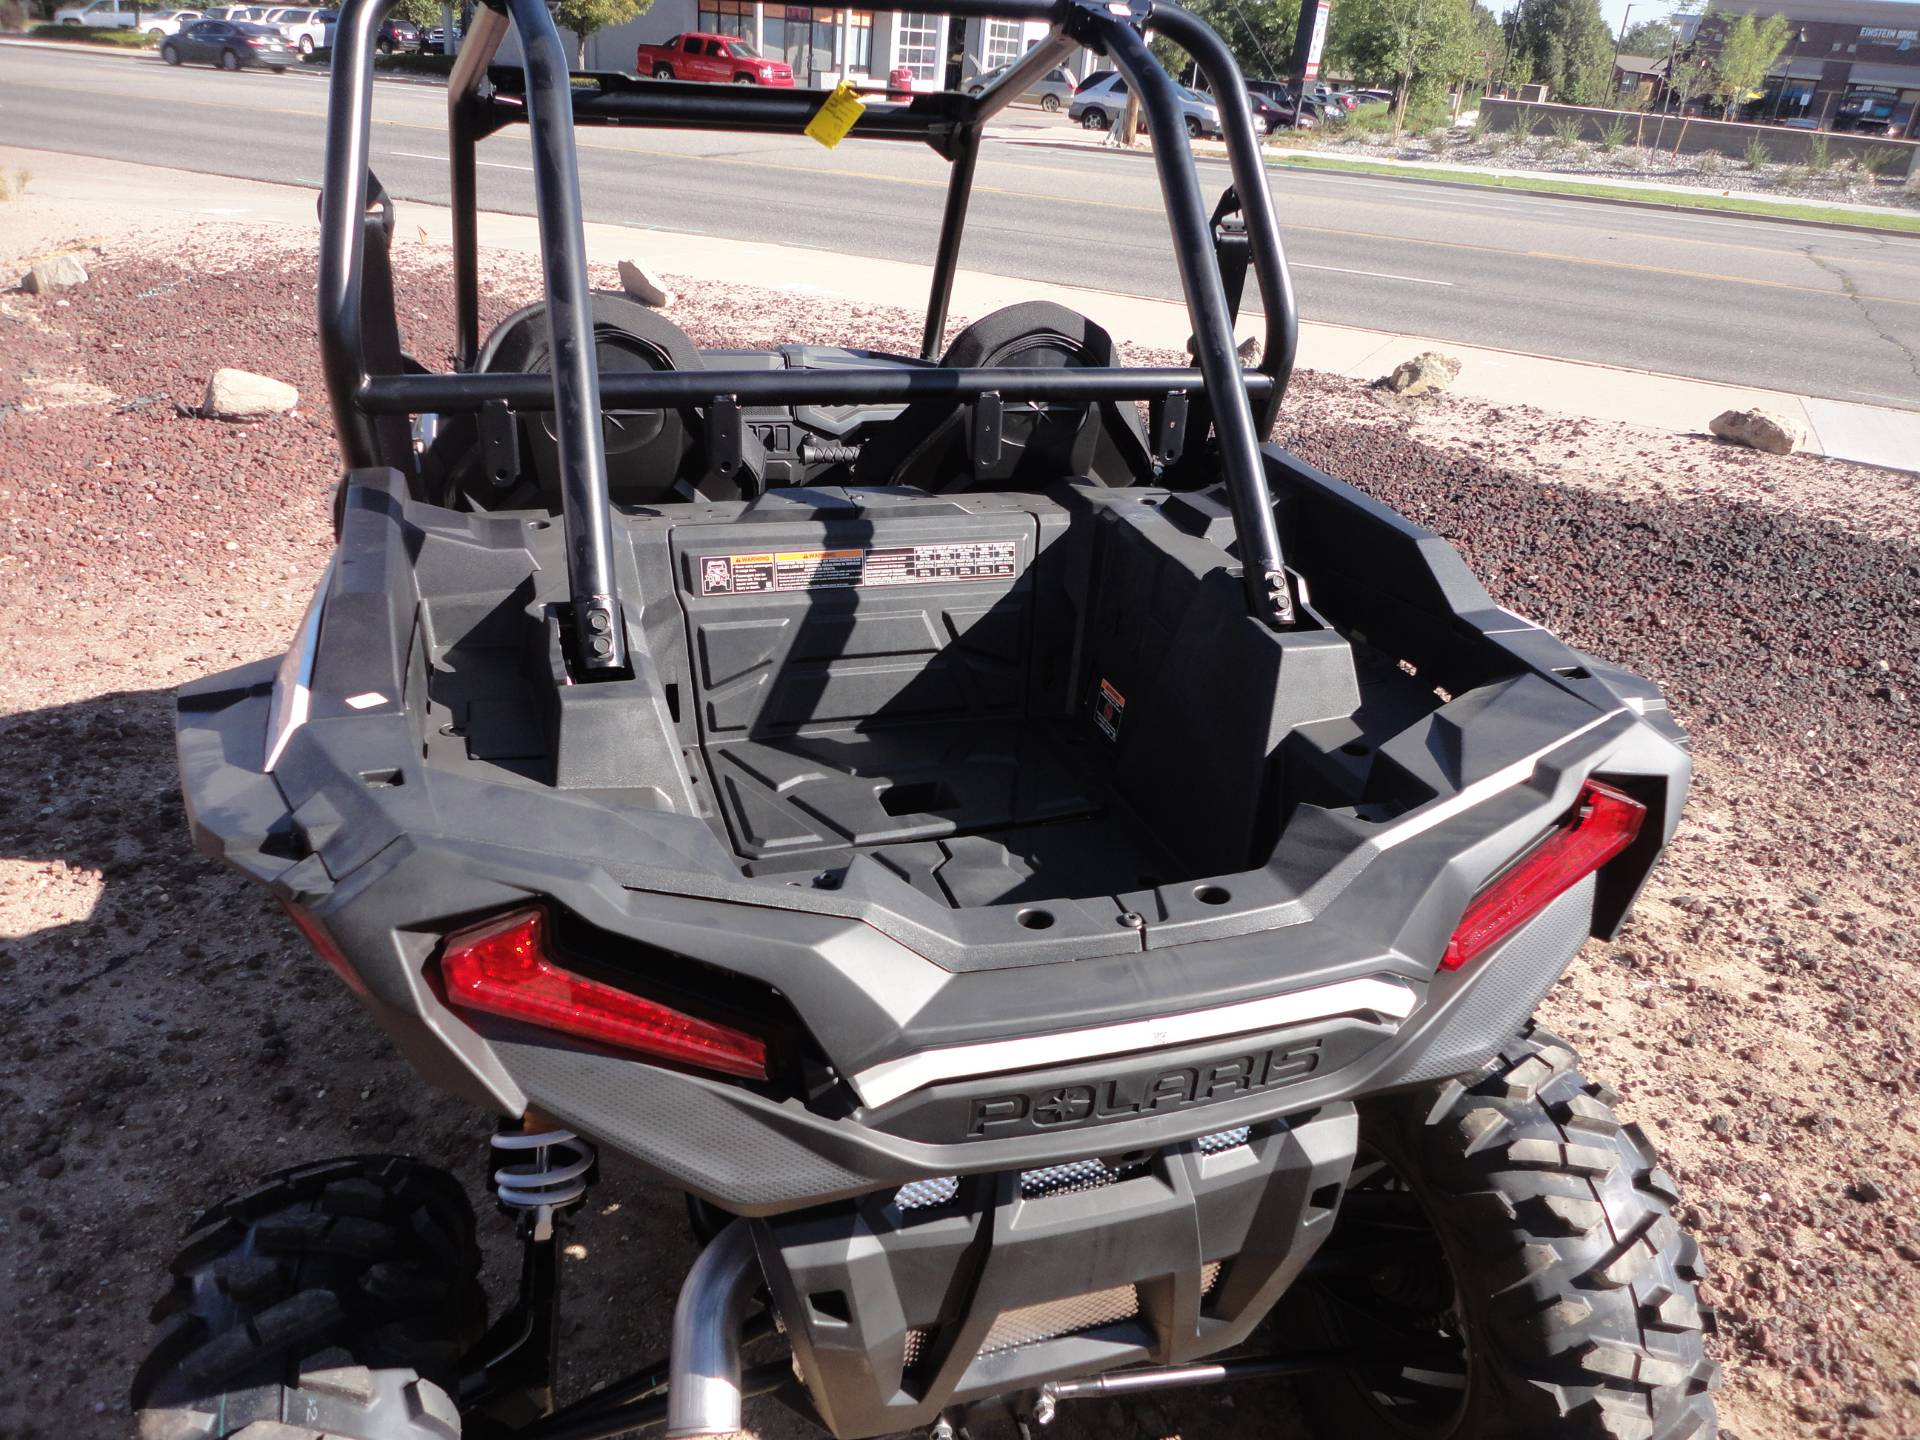 2019 Polaris RZR XP 1000 in Denver, Colorado